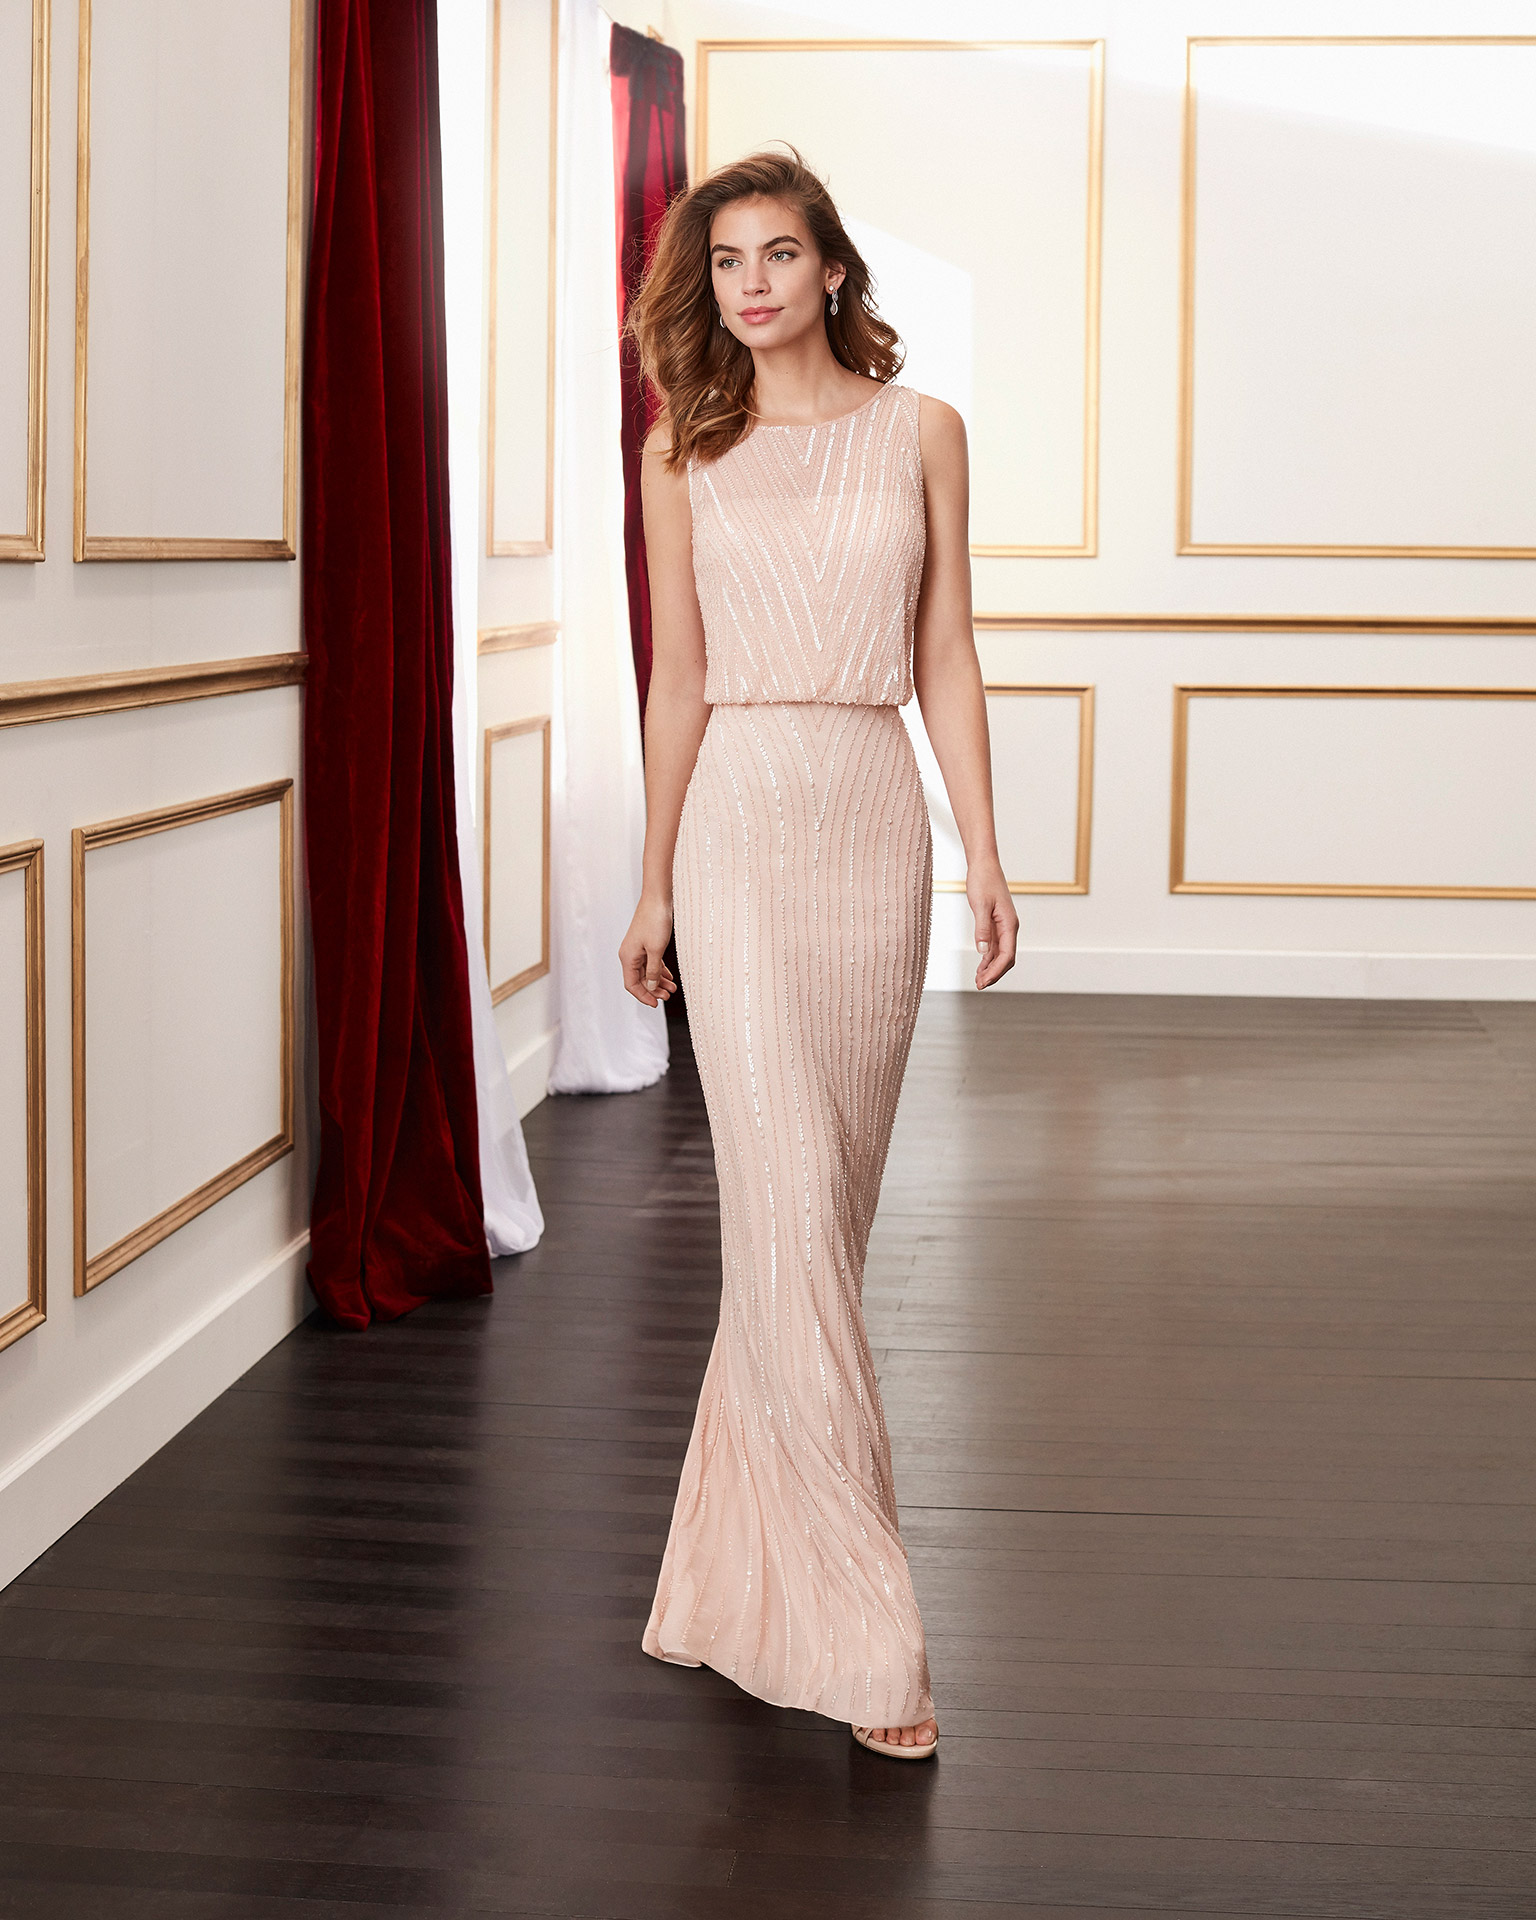 Beaded cocktail dress. Bateau neckline with V-back. With shawl. 2020 MARFIL BARCELONA Collection.